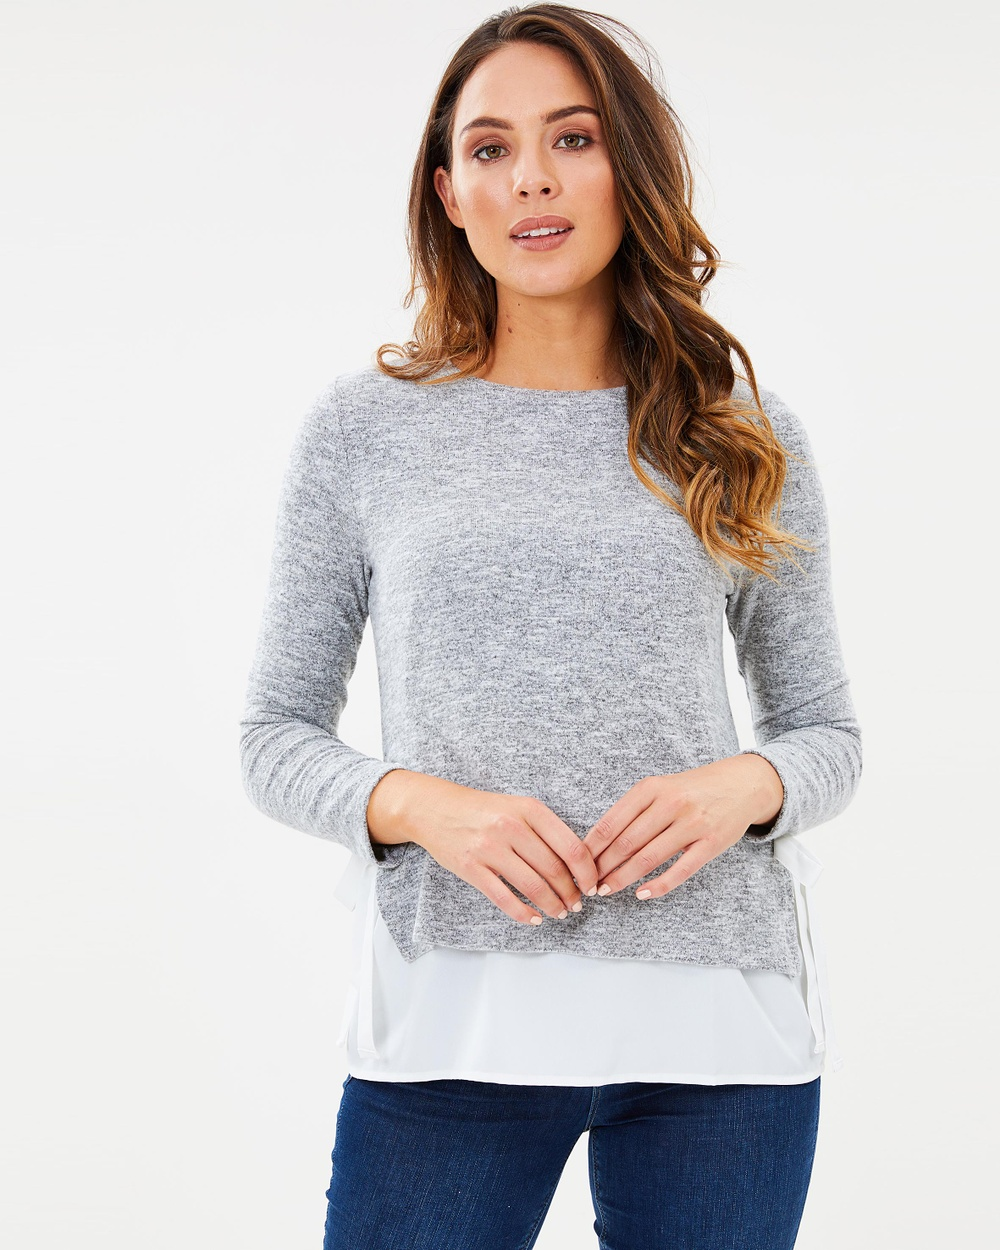 Oasis Tie Side Cosy Top Tops Pale Grey Tie Side Cosy Top